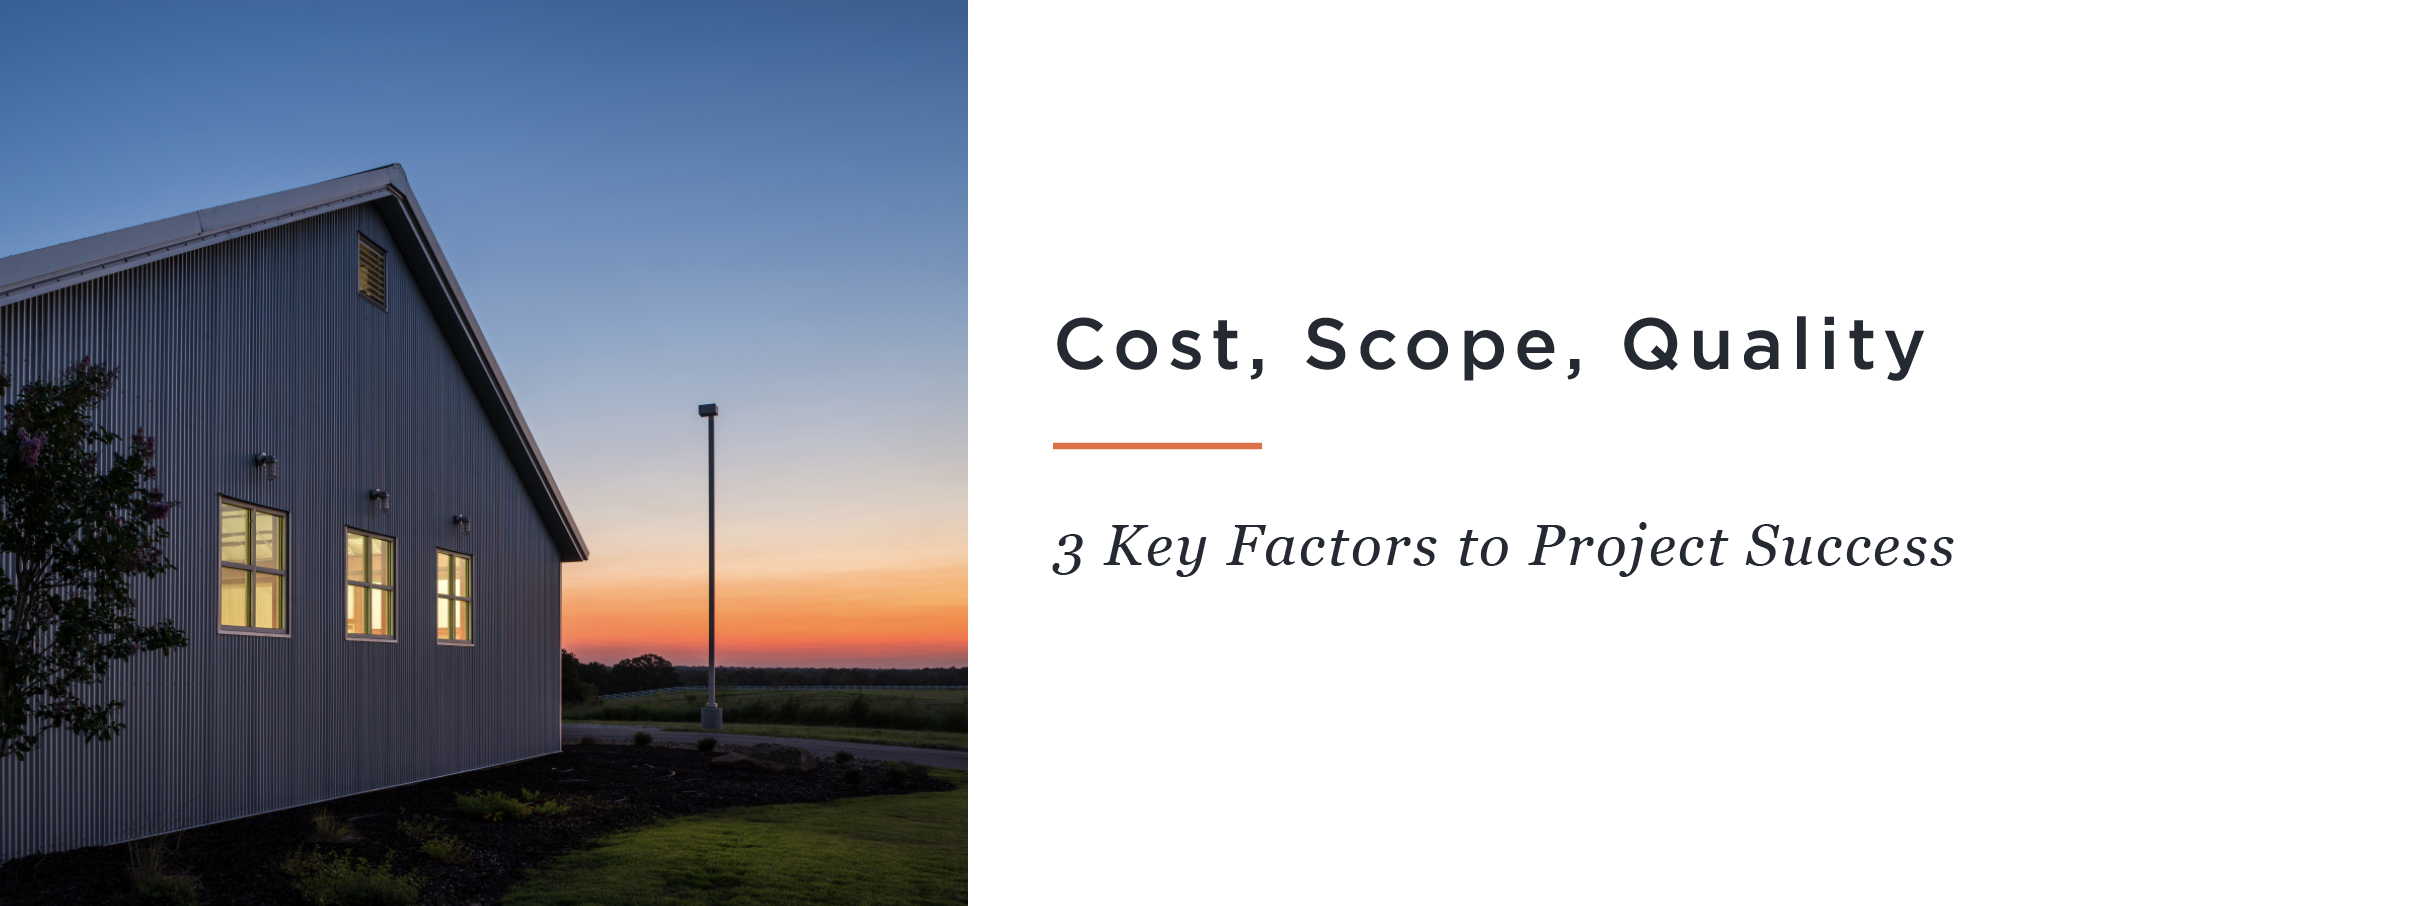 Cost, Scope, Quality: 3 Key Factors to Project Success